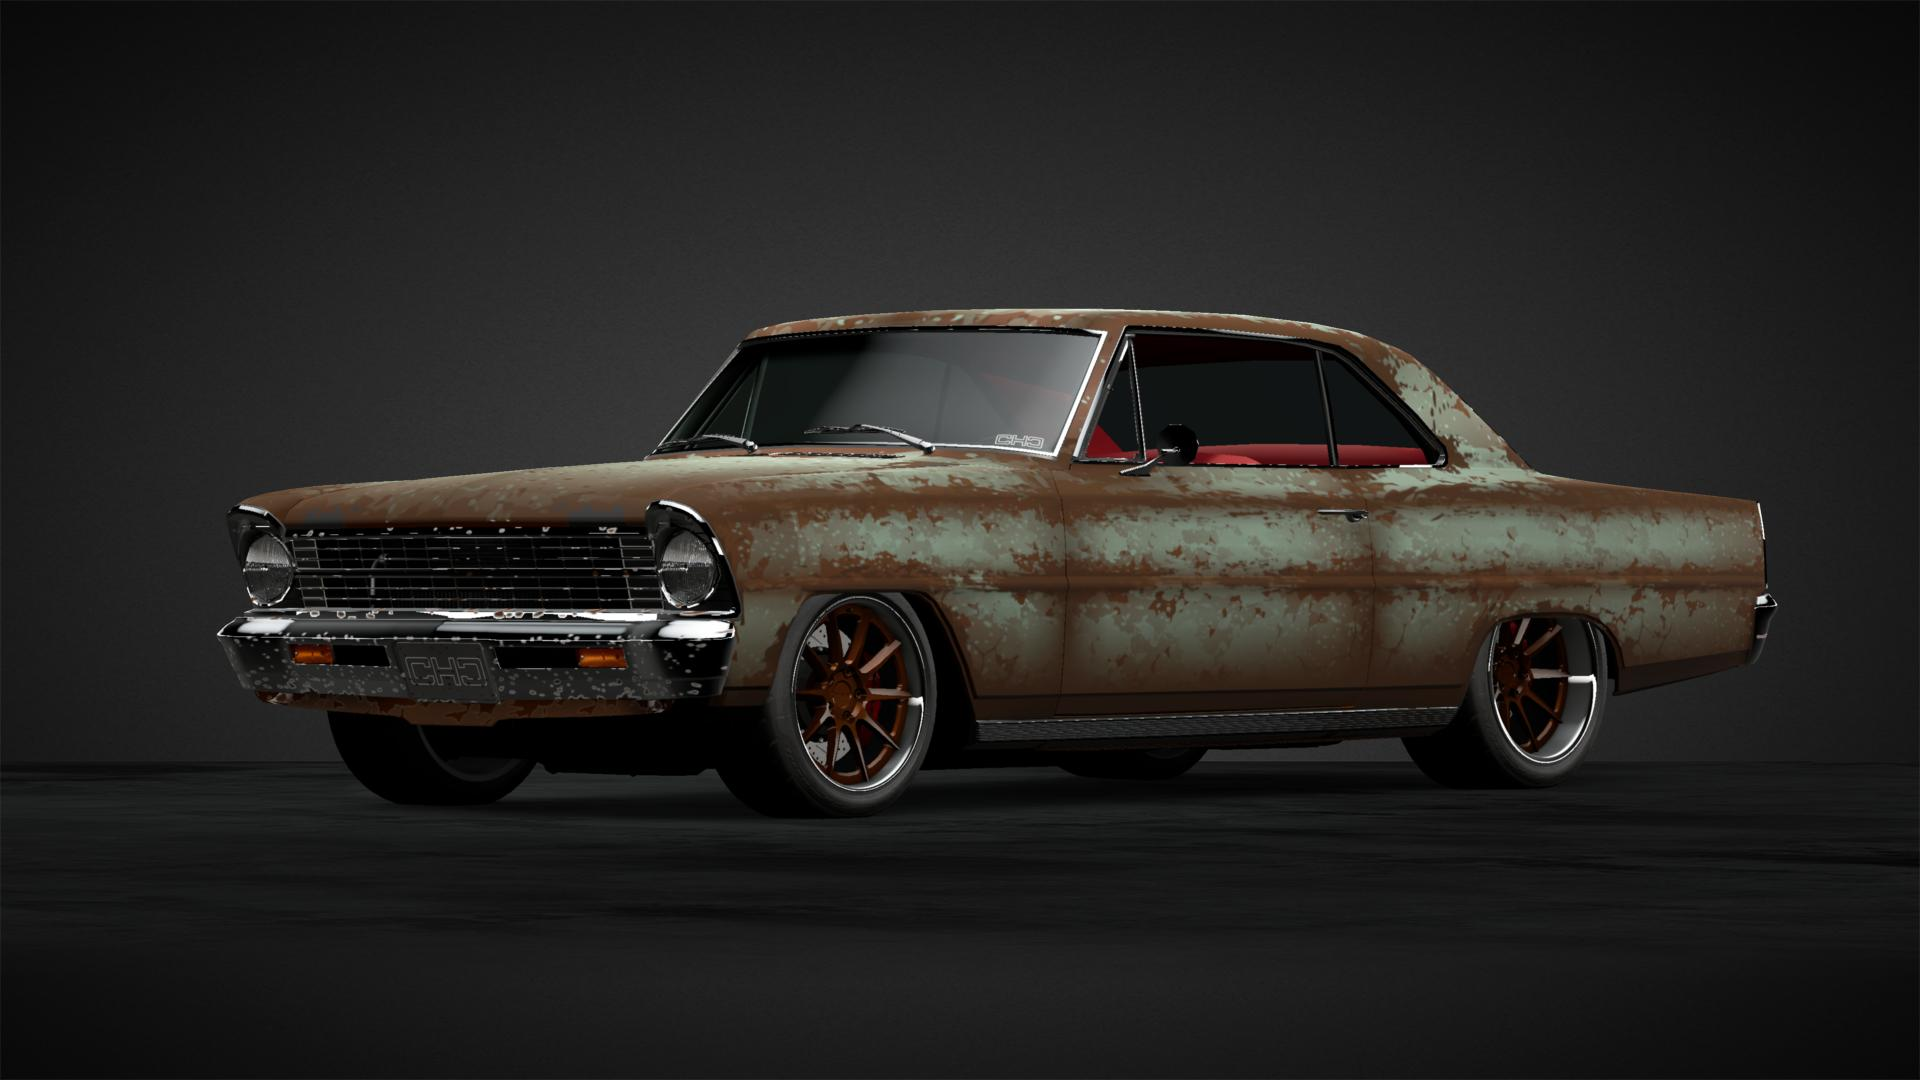 This Tuned 1967 Chevy Nova Full Of Rust Is The Gts Car You Can Drive Every Day Autoevolution